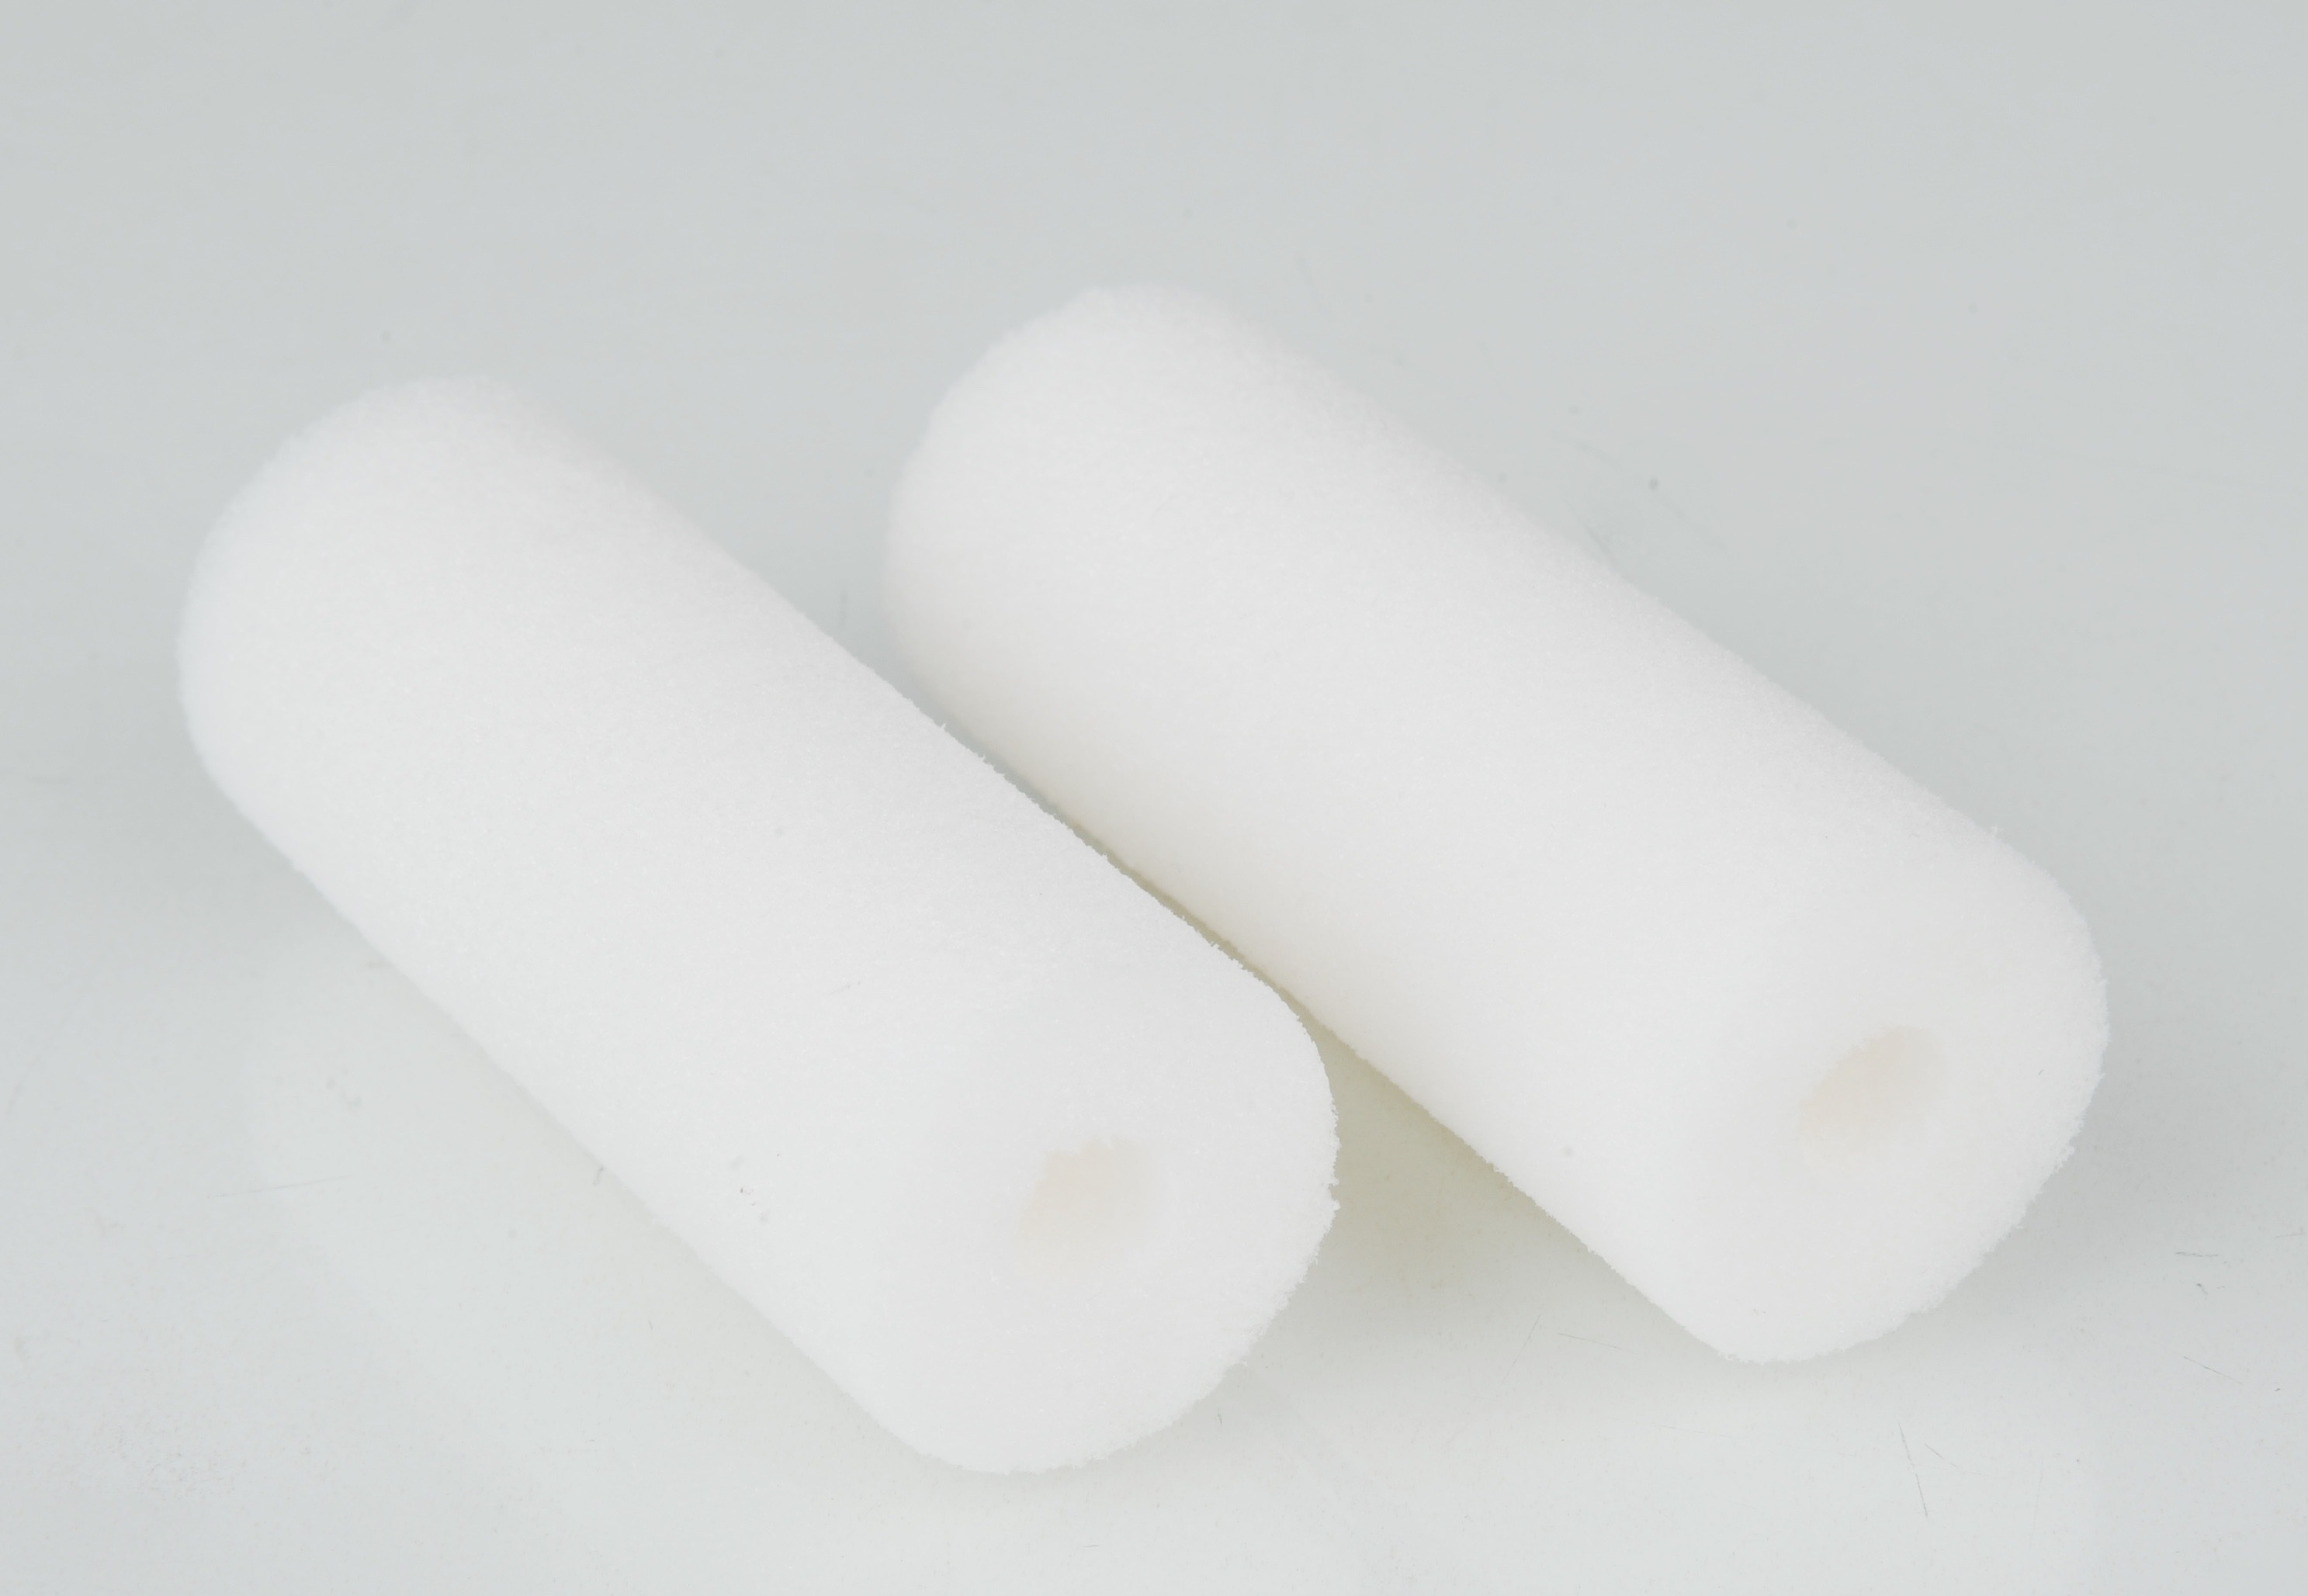 Surgical Anal Tampons